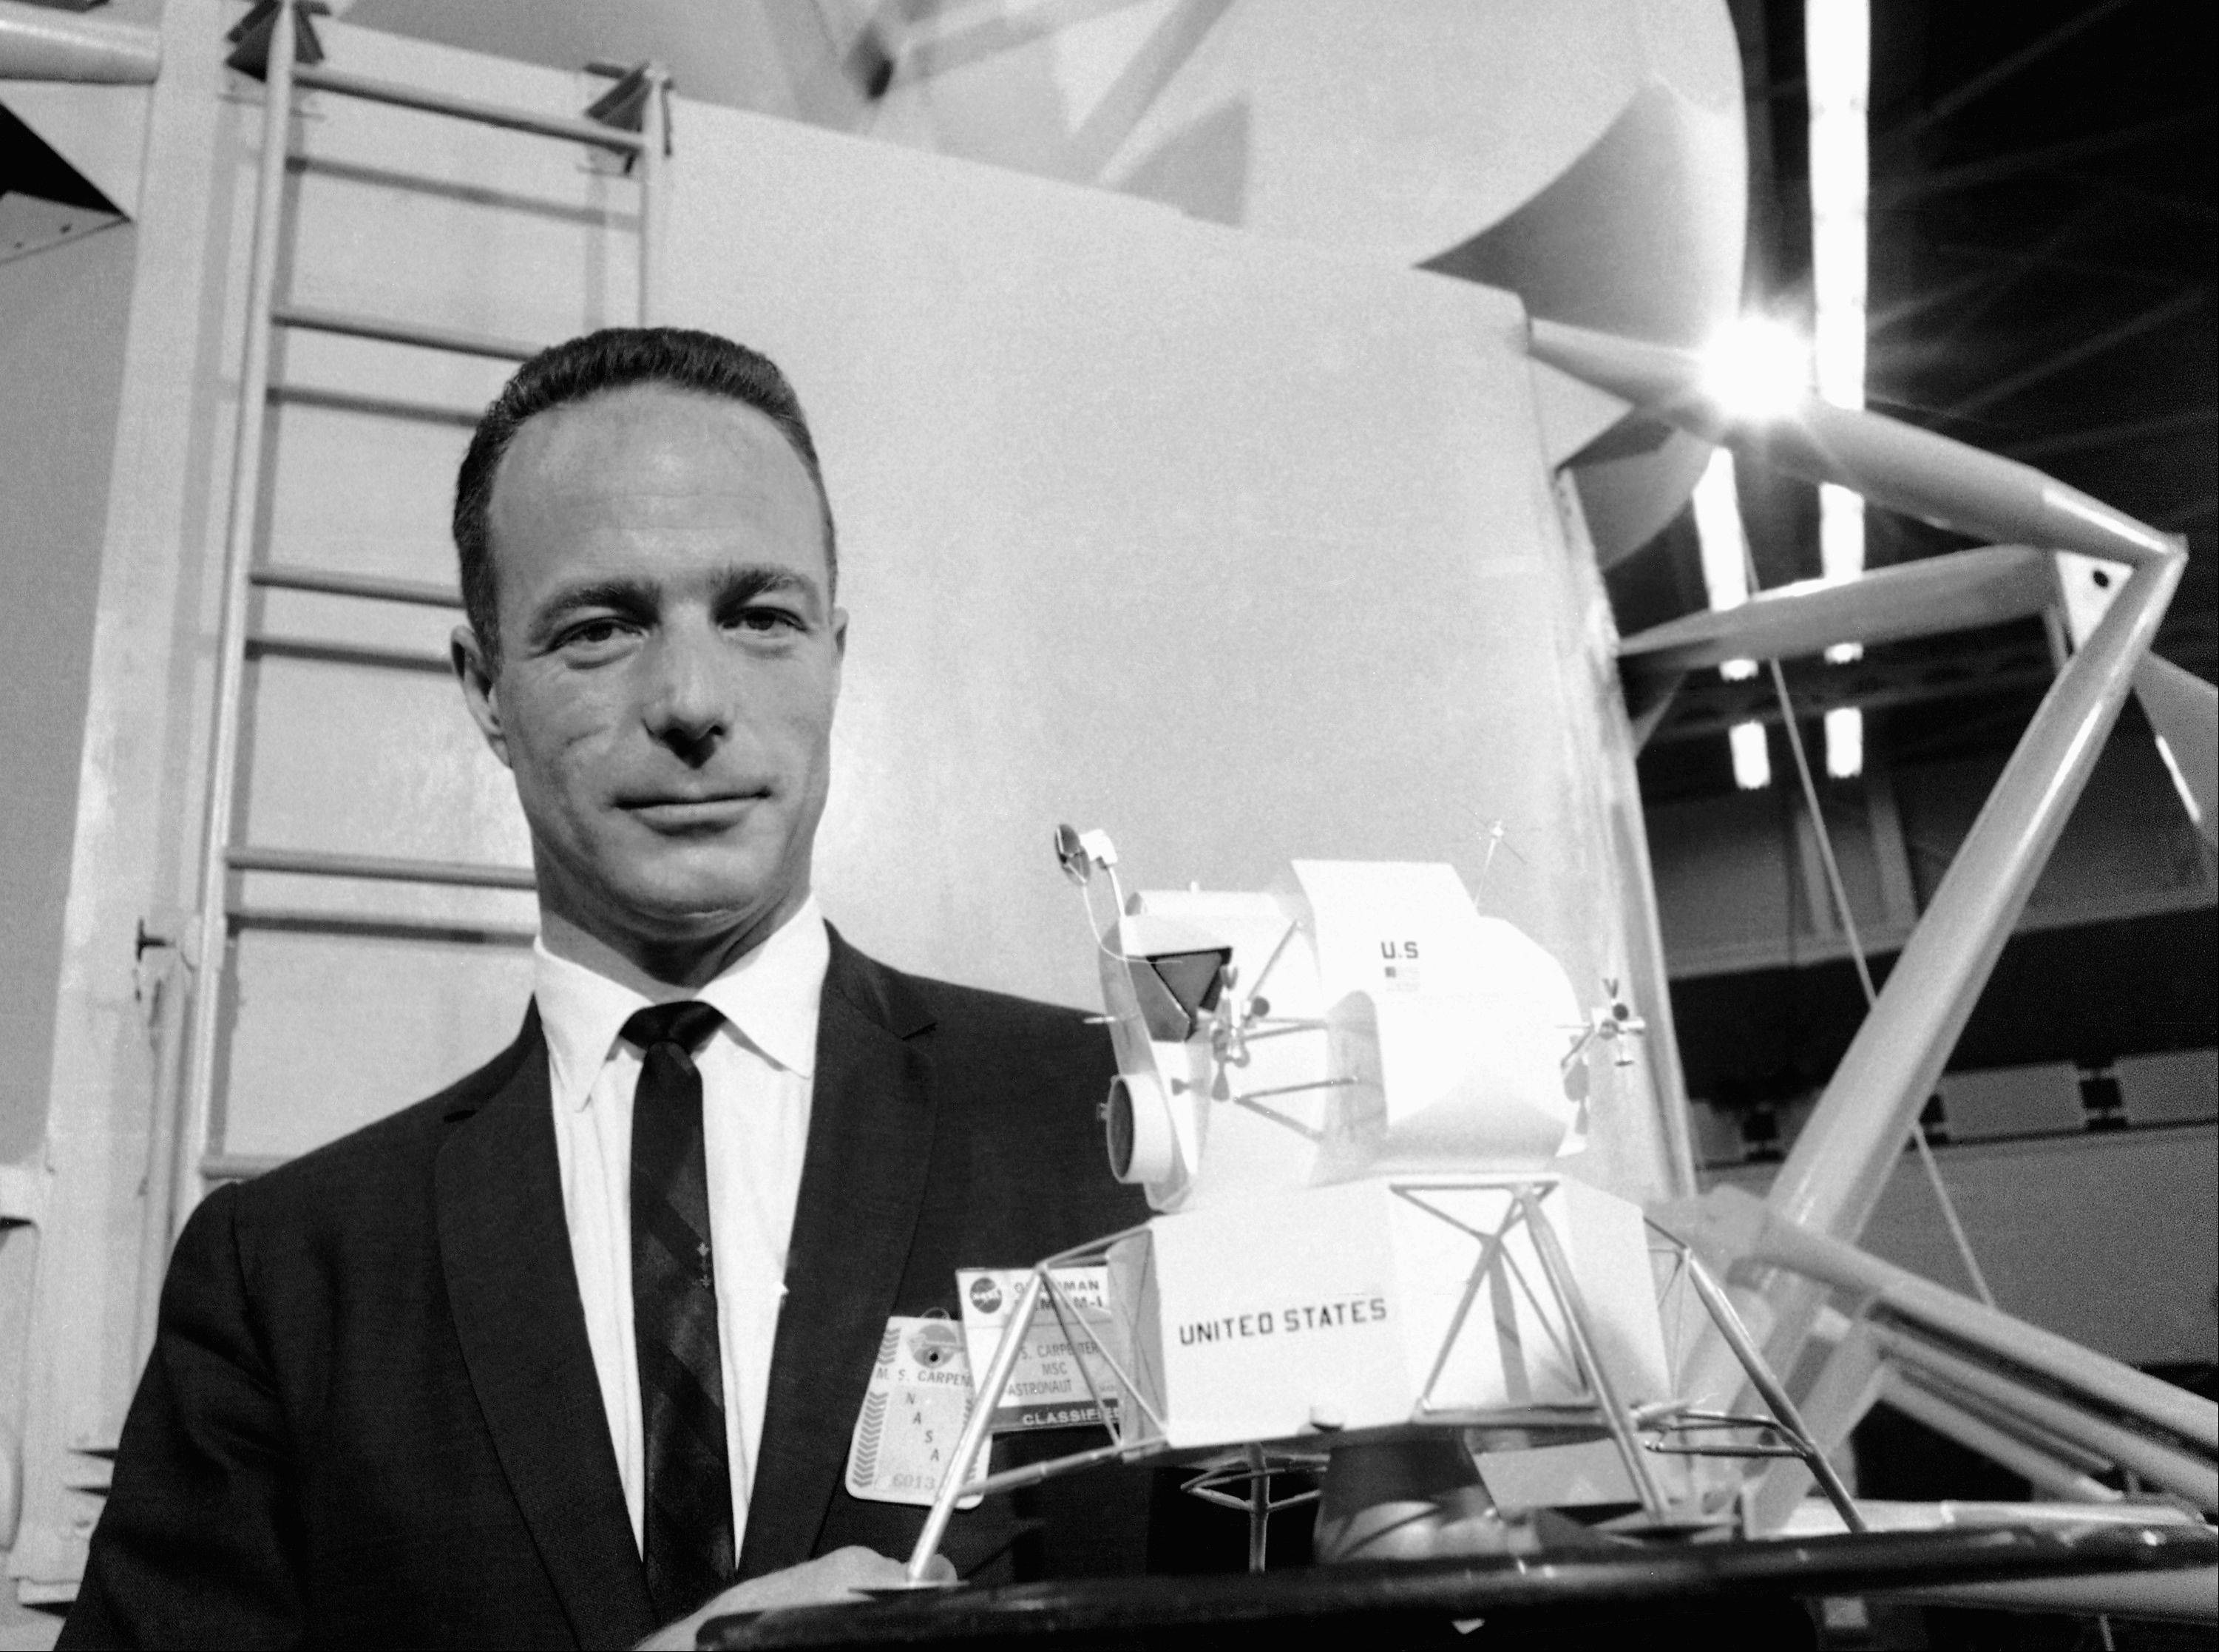 In this March 26, 1967 file photo, astronaut Scott Carpenter poses with model of the Lunar Excursion Module (LEM) at Grumman Aircraft Engineering Corp. plant in Bethpage, N.Y. Carpenter, the second American to orbit the Earth and first person to explore both the heights of space and depths of the ocean, died Thursday, Oct. 10, 2013 after a stroke. He was 88.